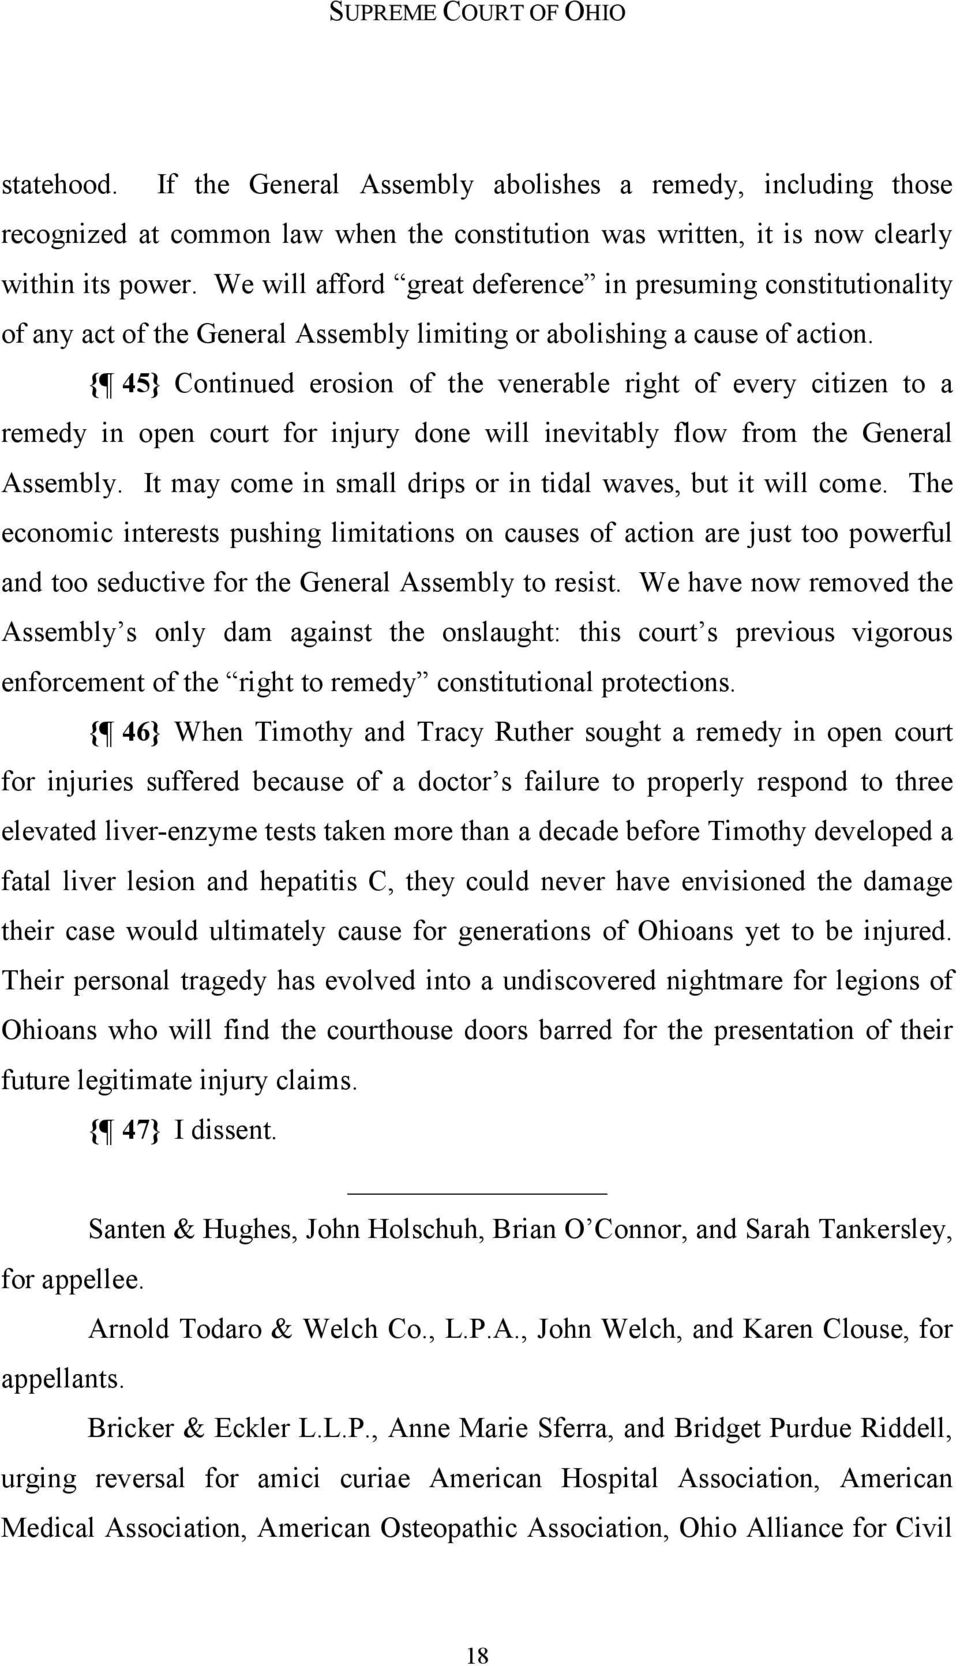 { 45} Continued erosion of the venerable right of every citizen to a remedy in open court for injury done will inevitably flow from the General Assembly.